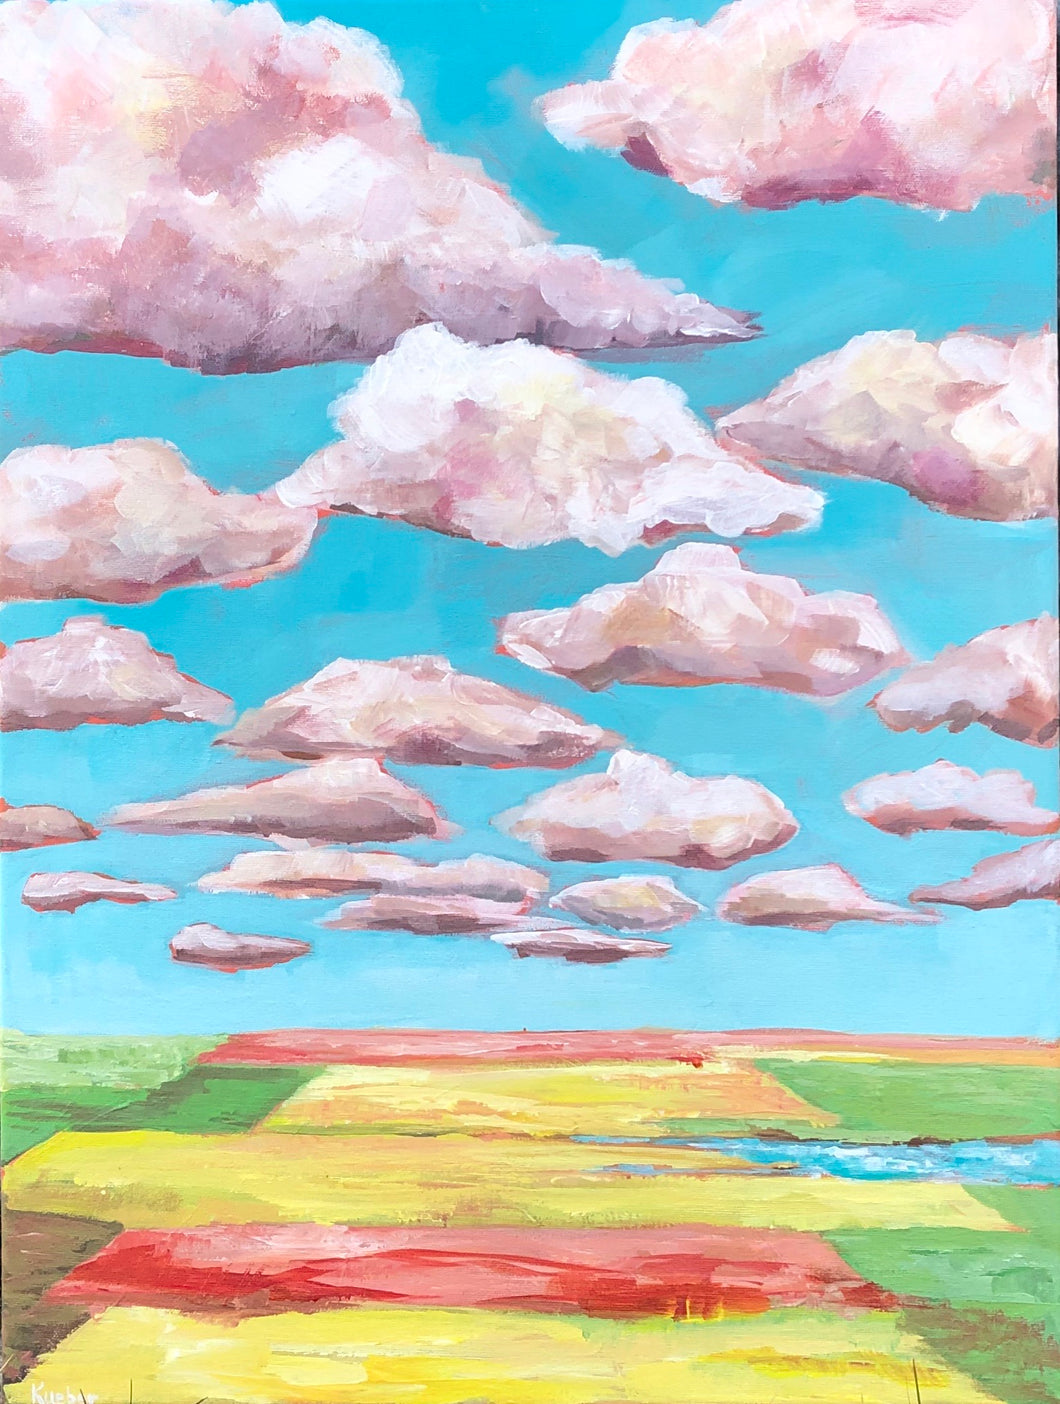 Clouds and Canola 1 - Original